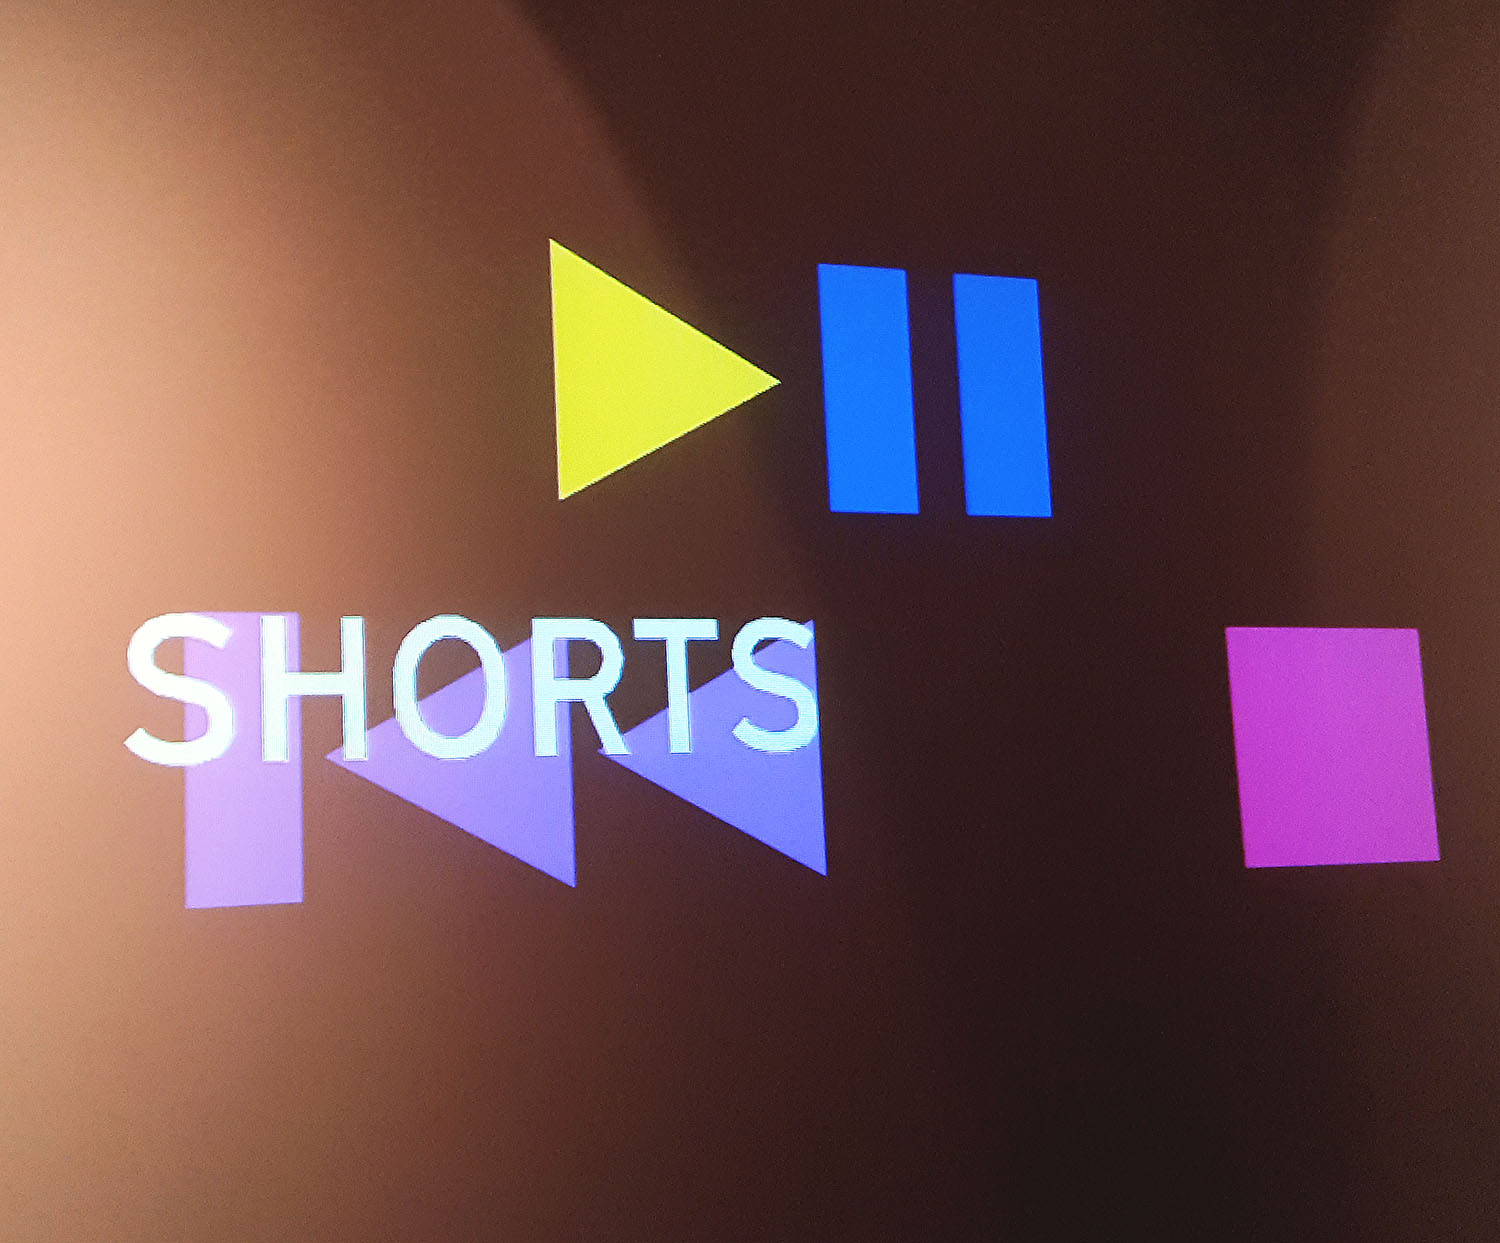 SHORTS, Graphic Design Festival Scotland at The Lighthouse, Glasgow